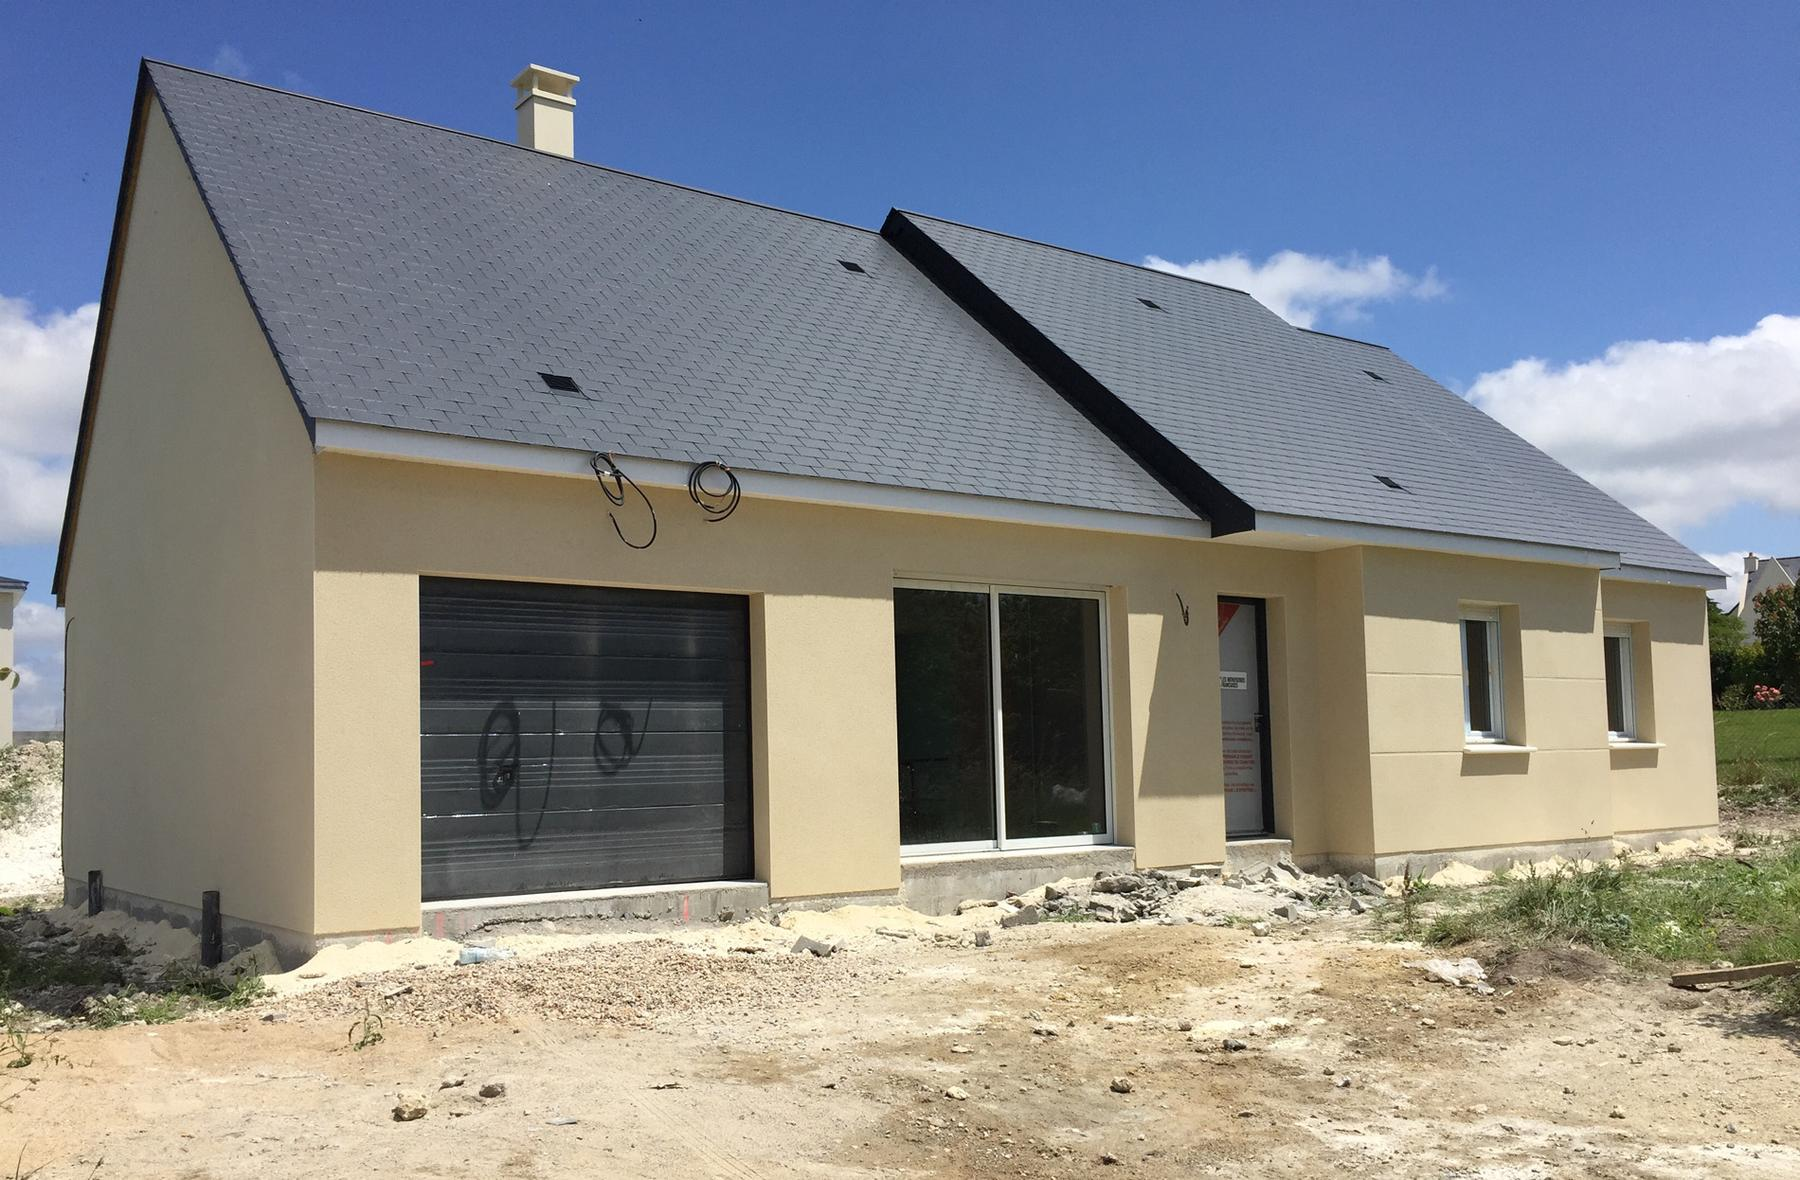 Projet en cours de construction sur chinon suite 3 for Maison en construction